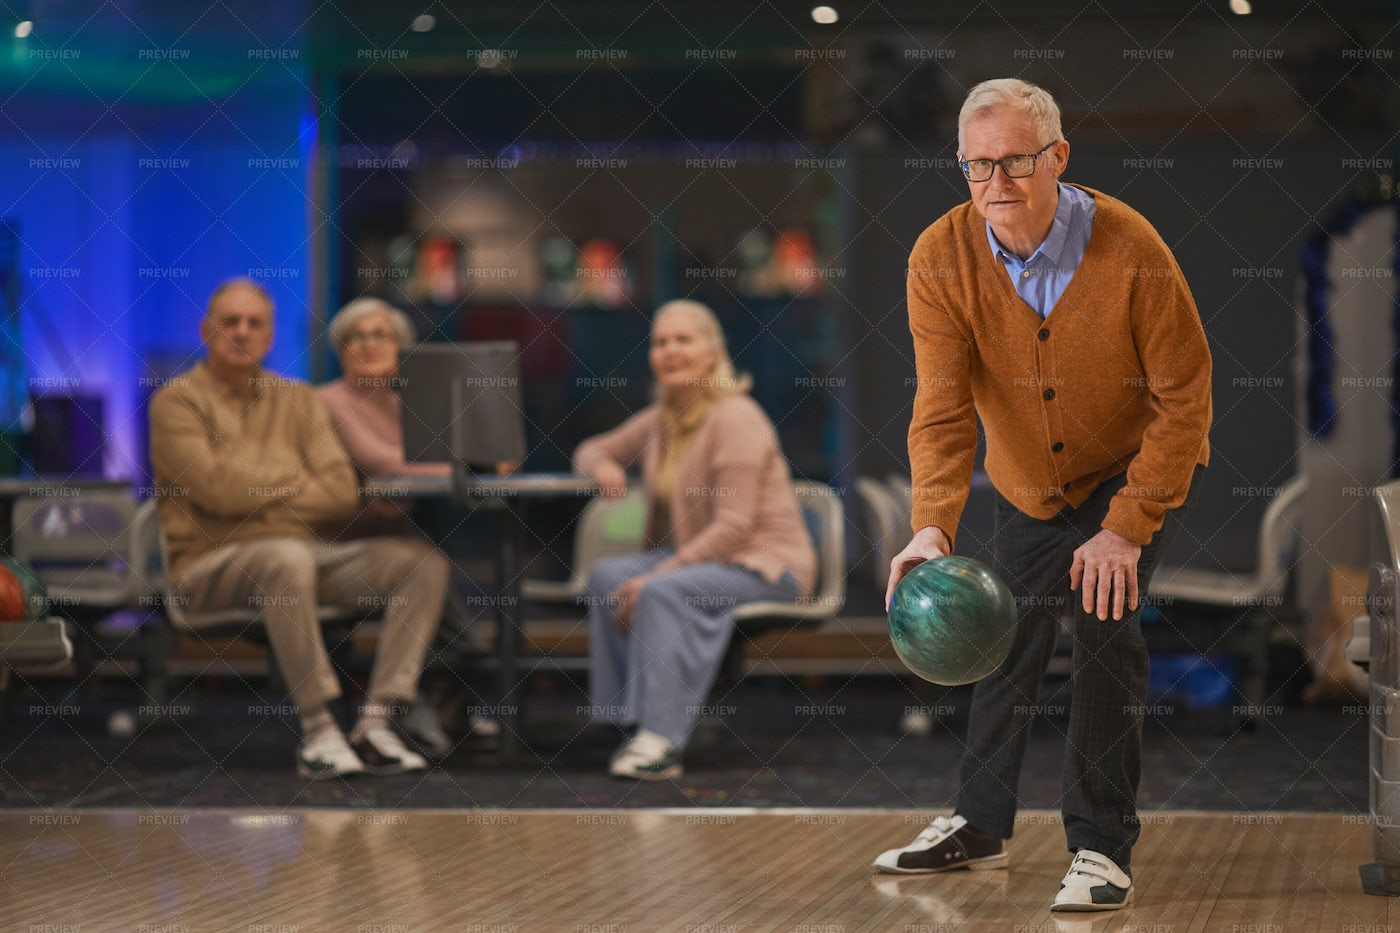 Senior Man Playing Bowling With Friends: Stock Photos